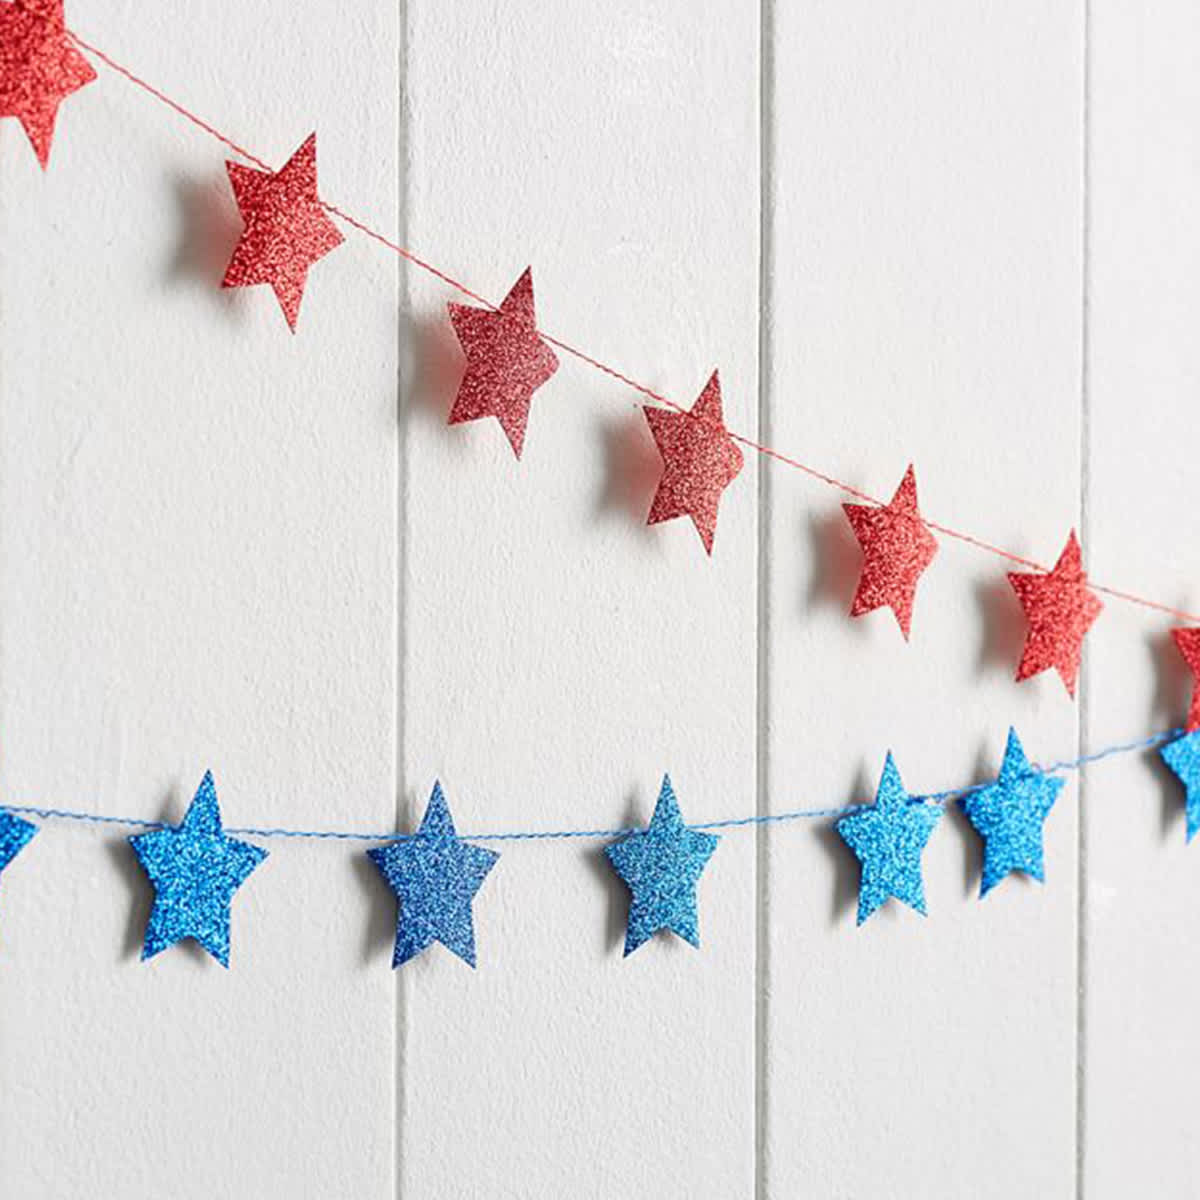 10 Festive 4th of July Decorations for $10 or Less: gallery image 10